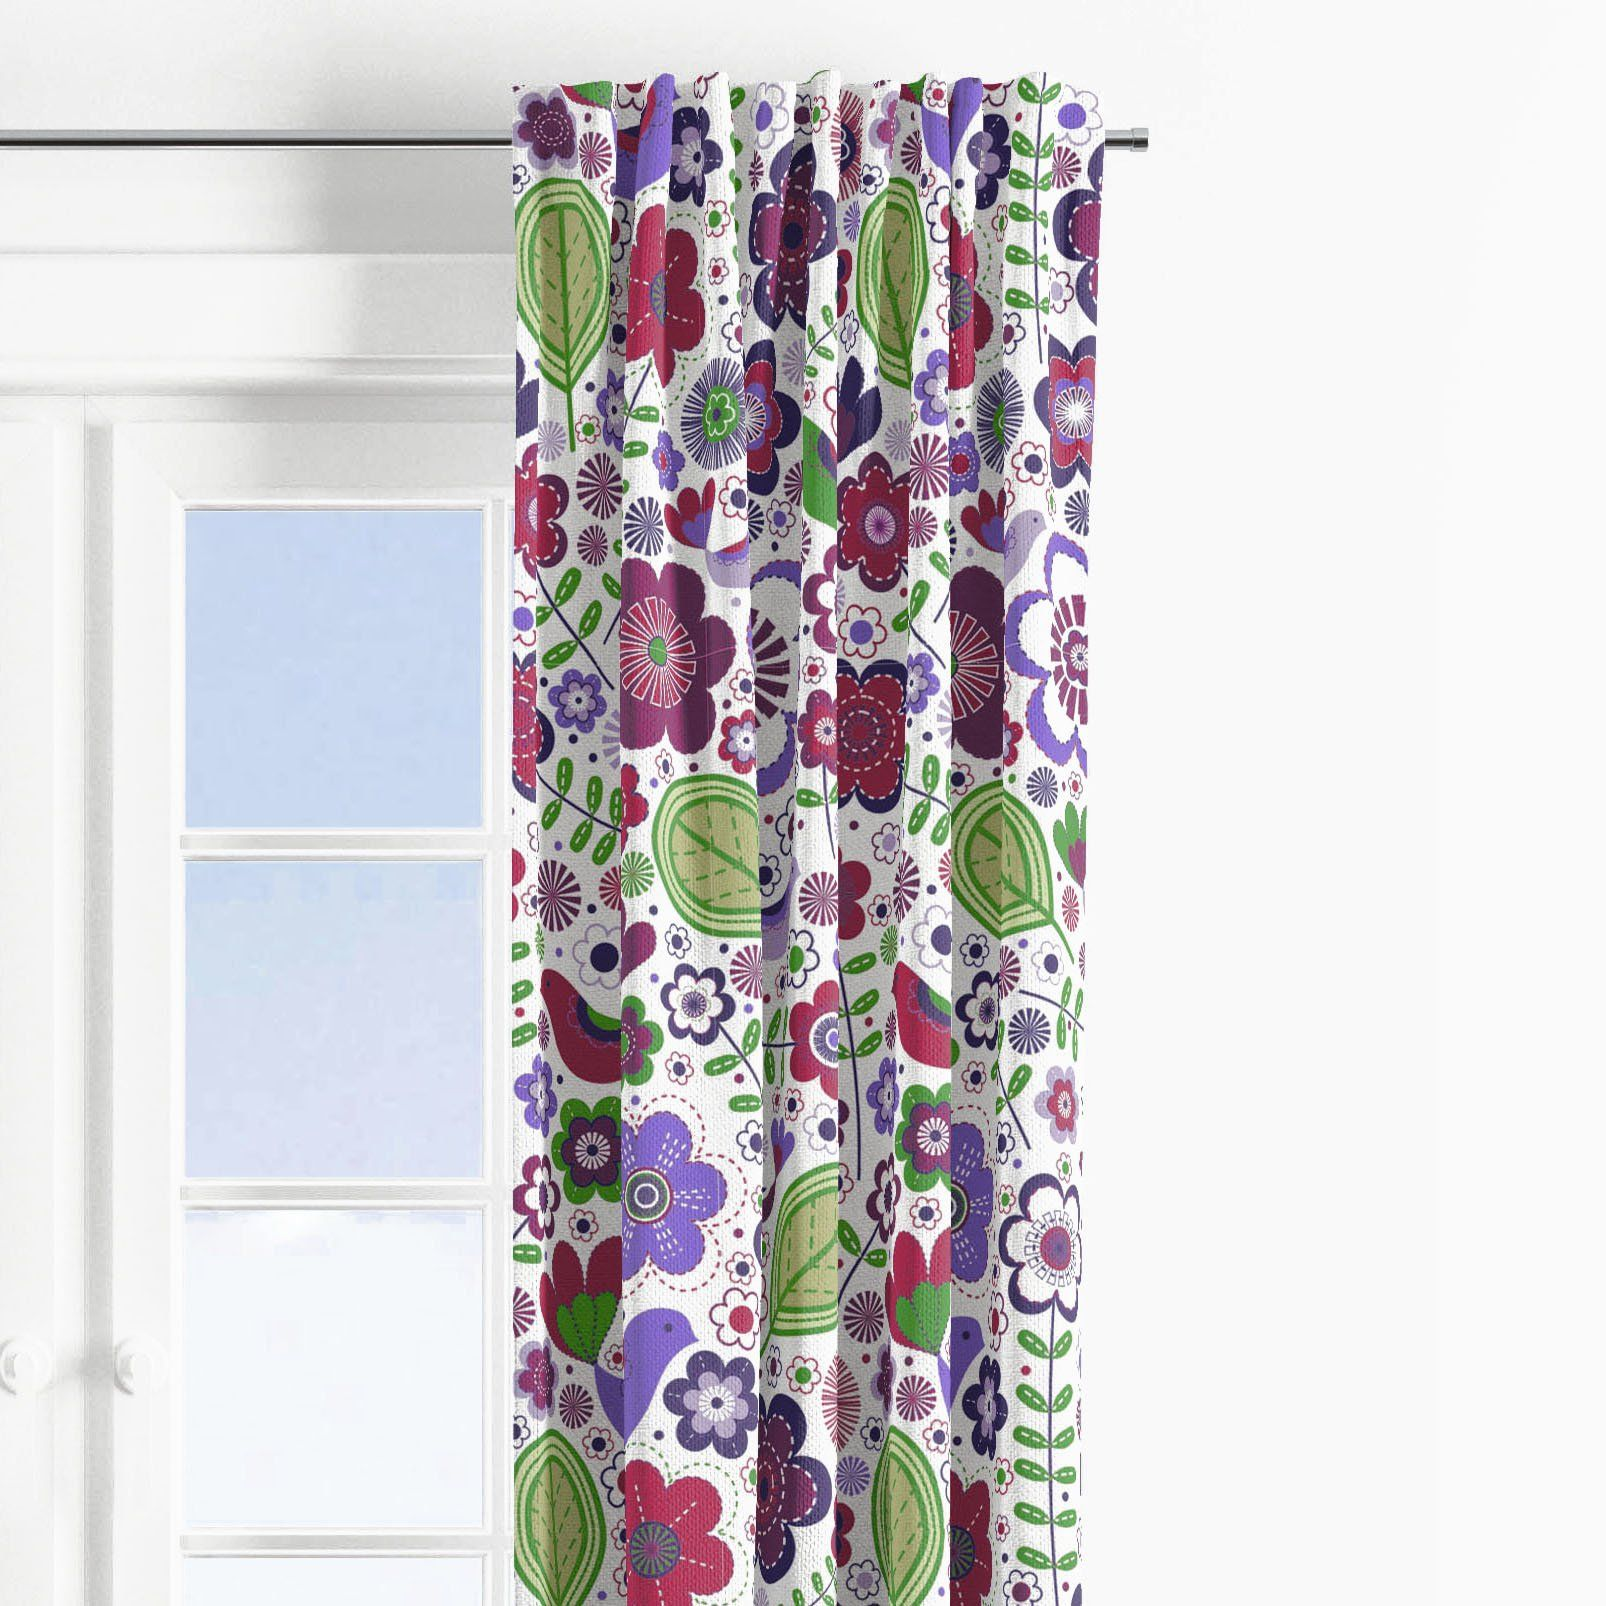 Bacati - Botanical Purple/Multicolor Window Treatments Curtain Panel/Valance Sold Individually (Multiple Prints to choose from) - Botanical Print